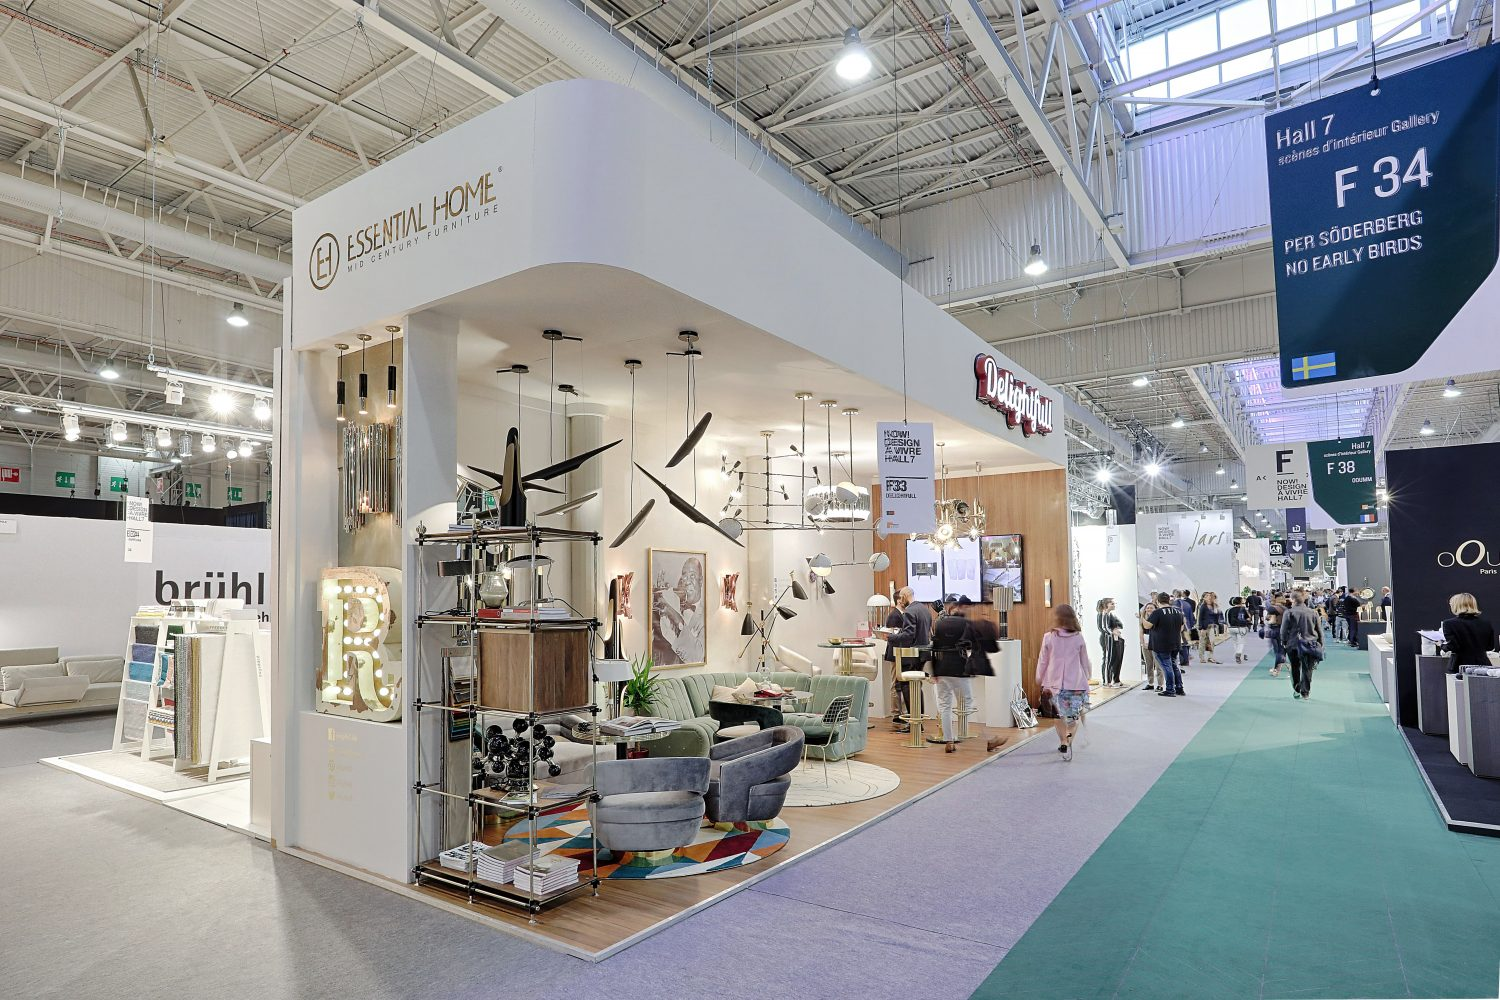 maison et objet paris The Best Exhibitions at Maison et Objet Paris in Photos The Best Exhibitions at Maison et Objet Paris in Photos DelightFull Essential Home 1